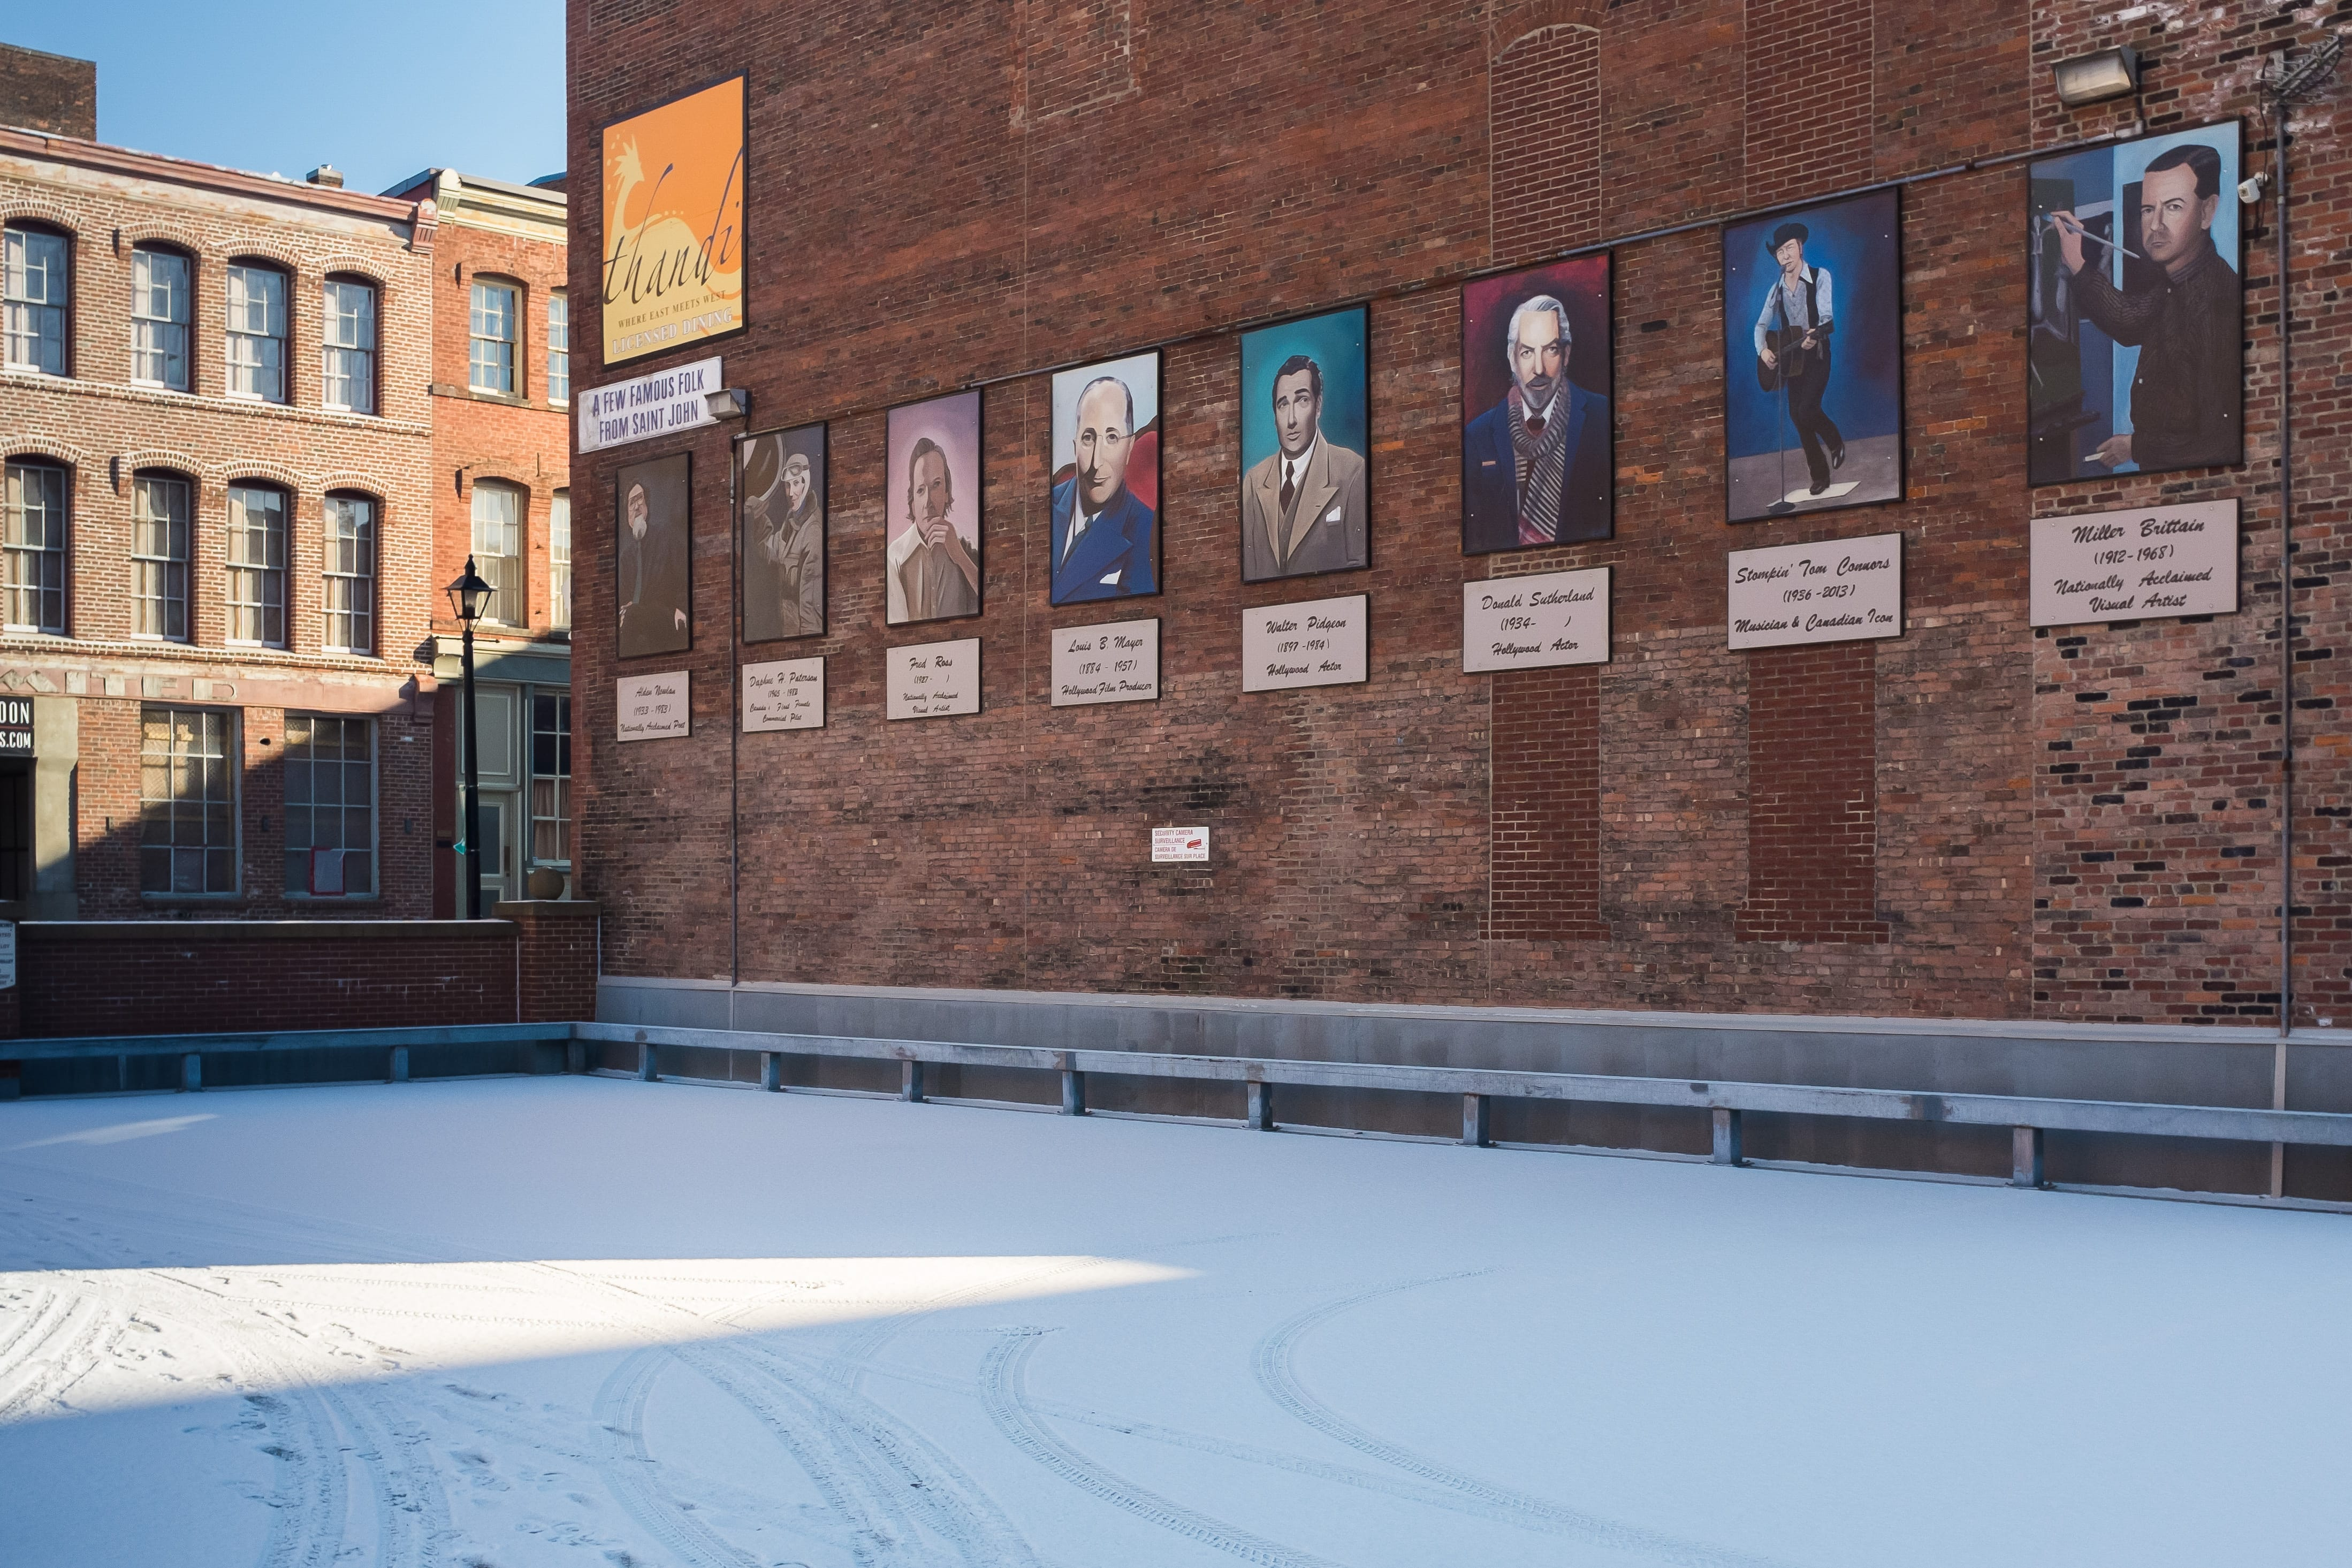 A photograph depicting Famous Saint Johners Mural Winter Parking Lot on Canterbury Street